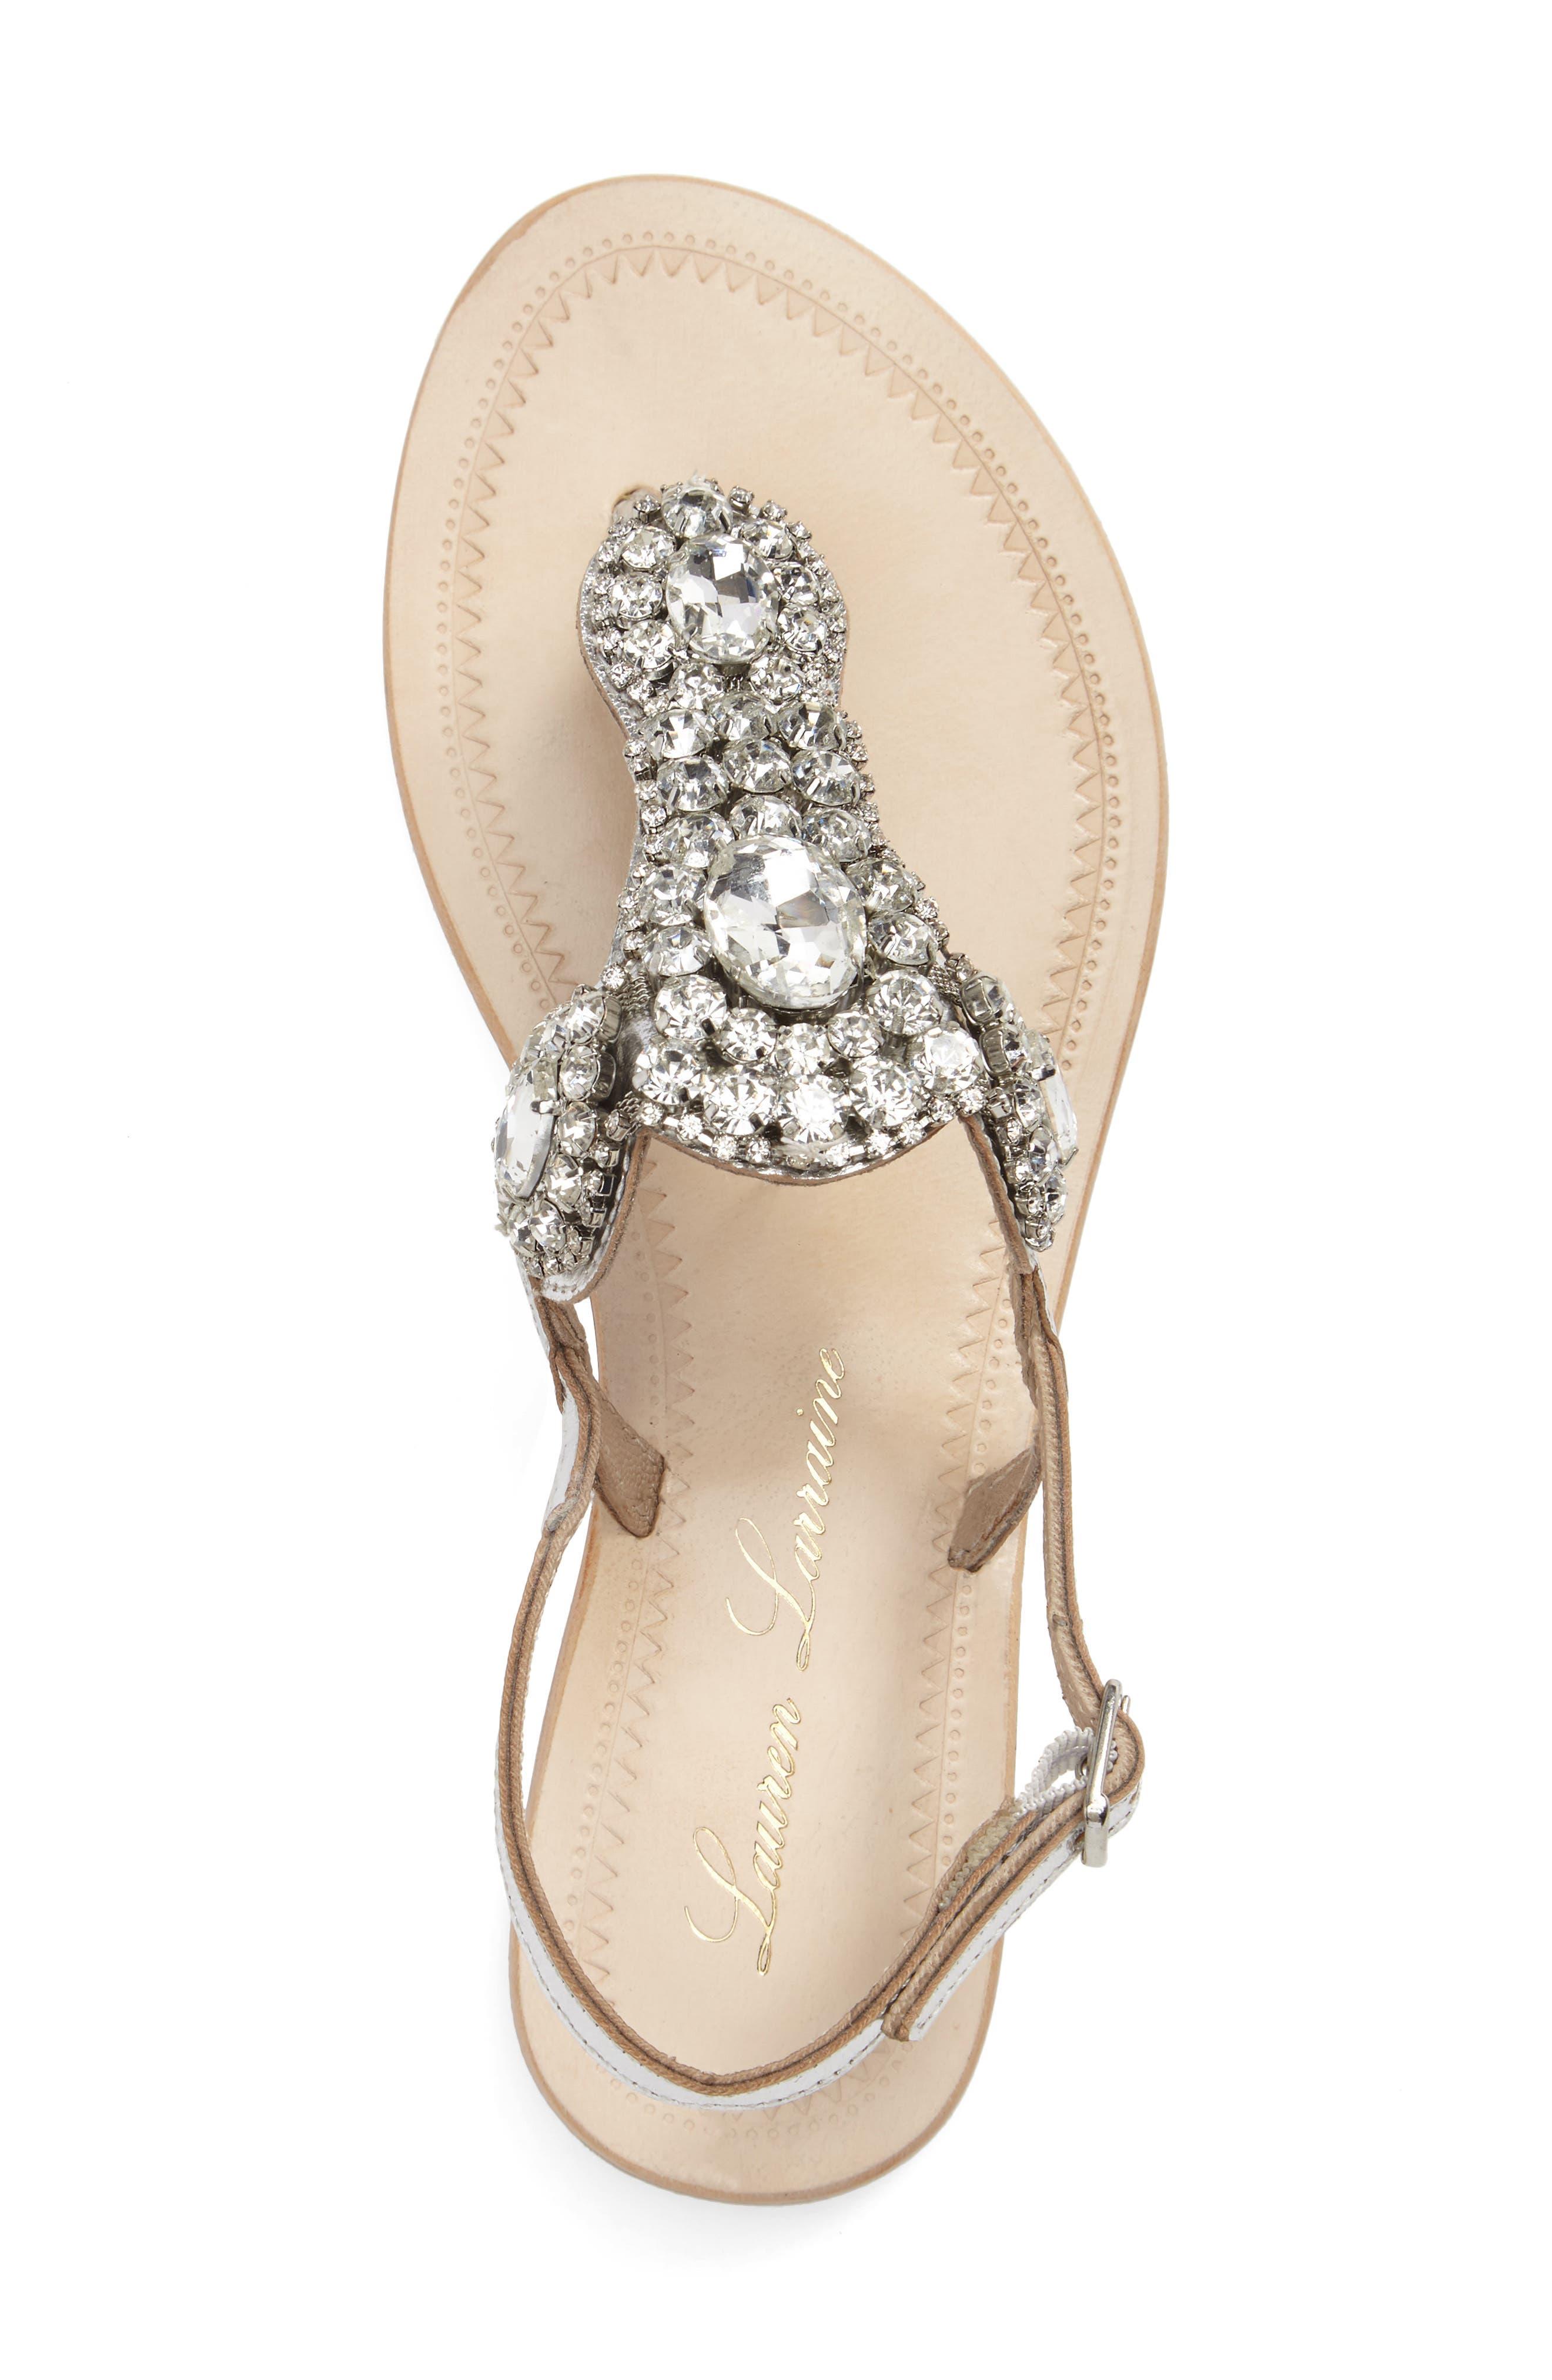 Bahama Crystal Embellished Sandal,                             Alternate thumbnail 5, color,                             045